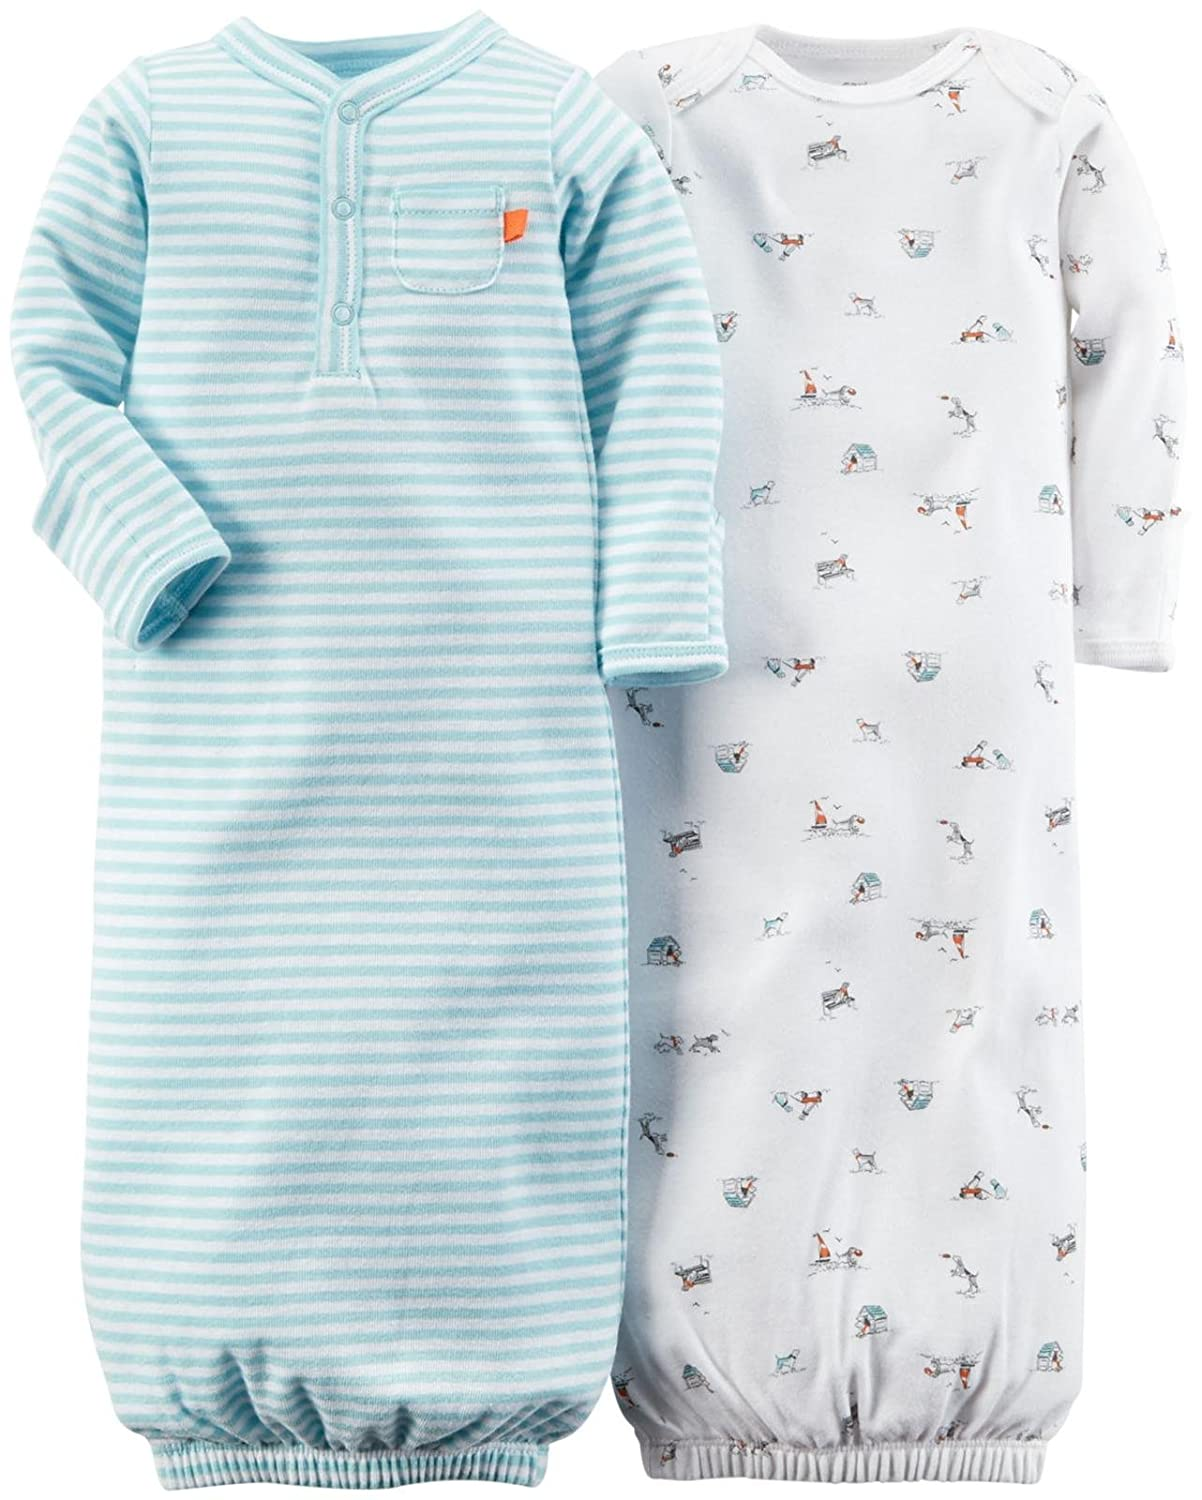 Carter's Baby Boys' 2 Pack Print Gowns (Baby) Carter' s 1195795